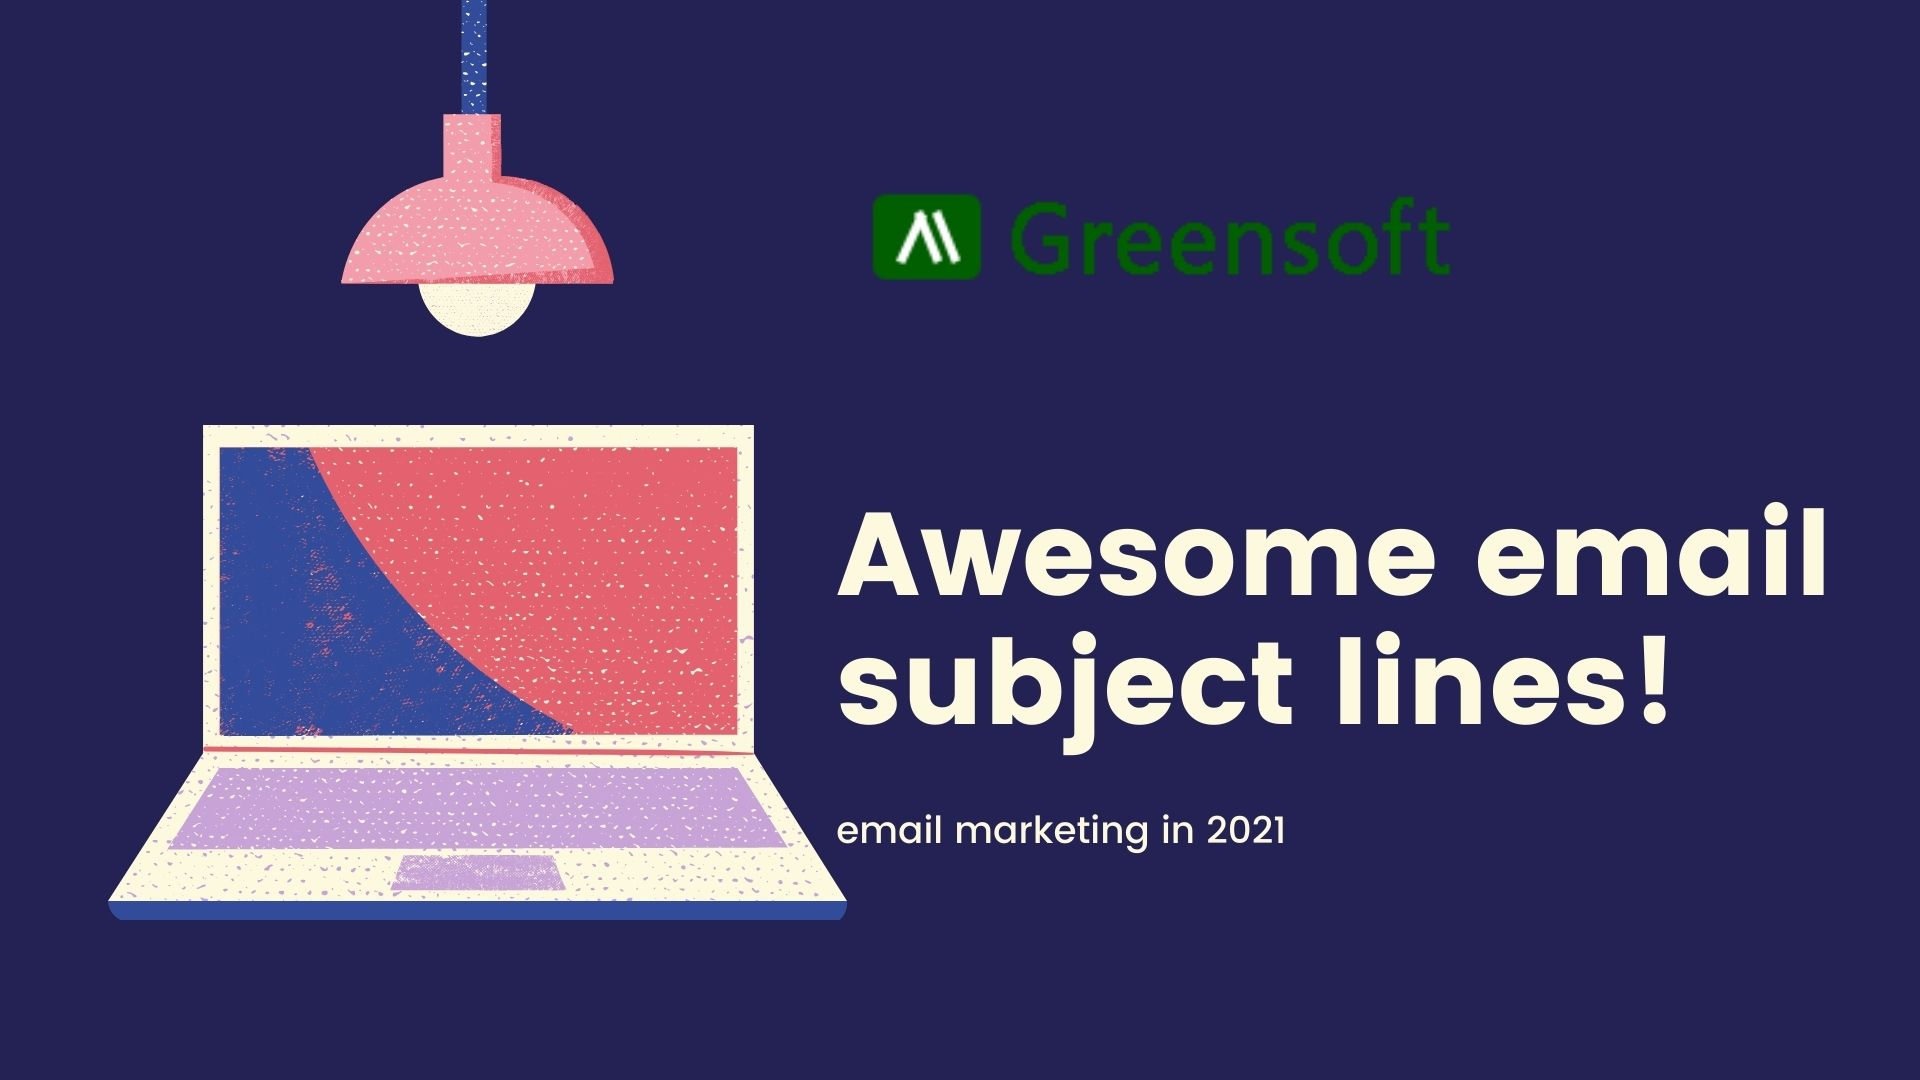 email subject line for email marketing